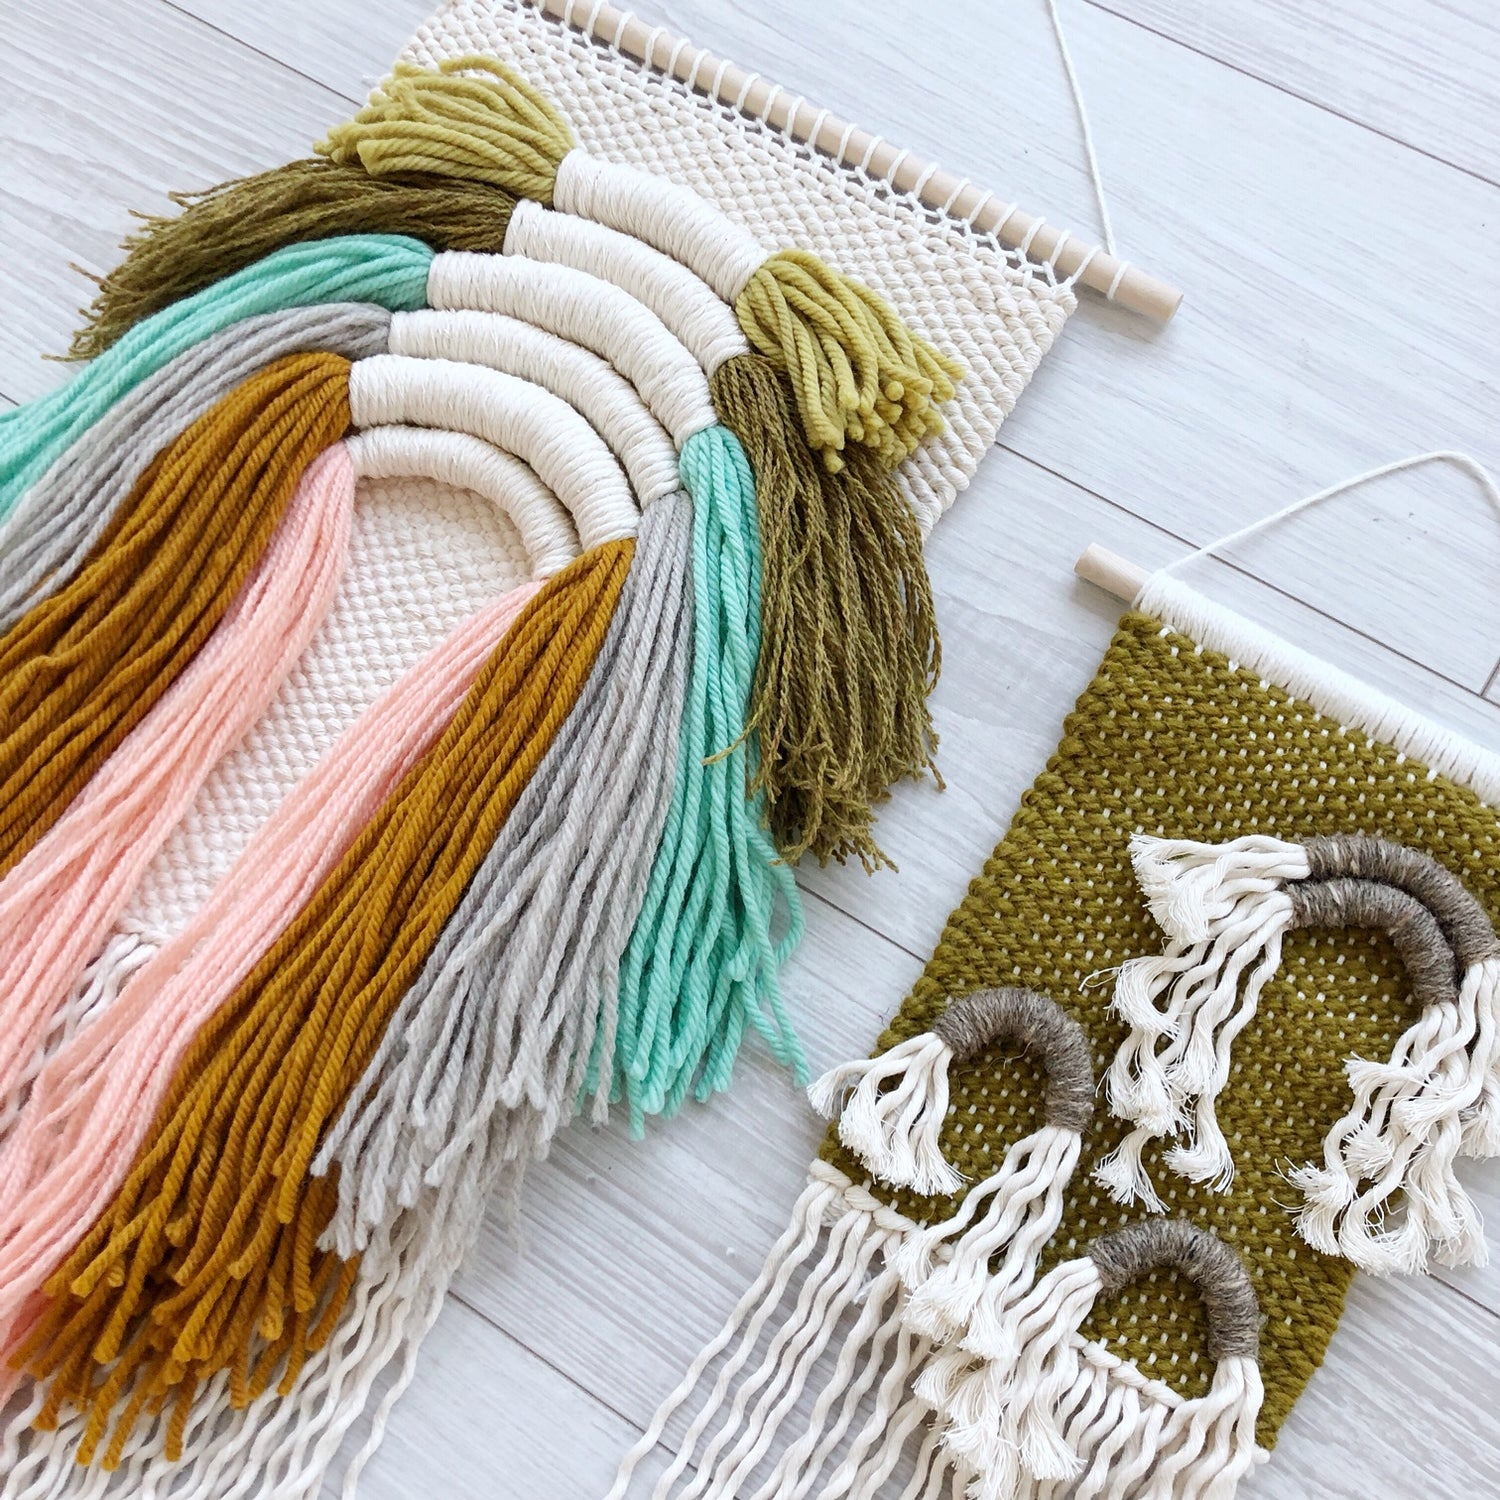 Image of Woven: Next Steps, Intermediate Weaving e-Course